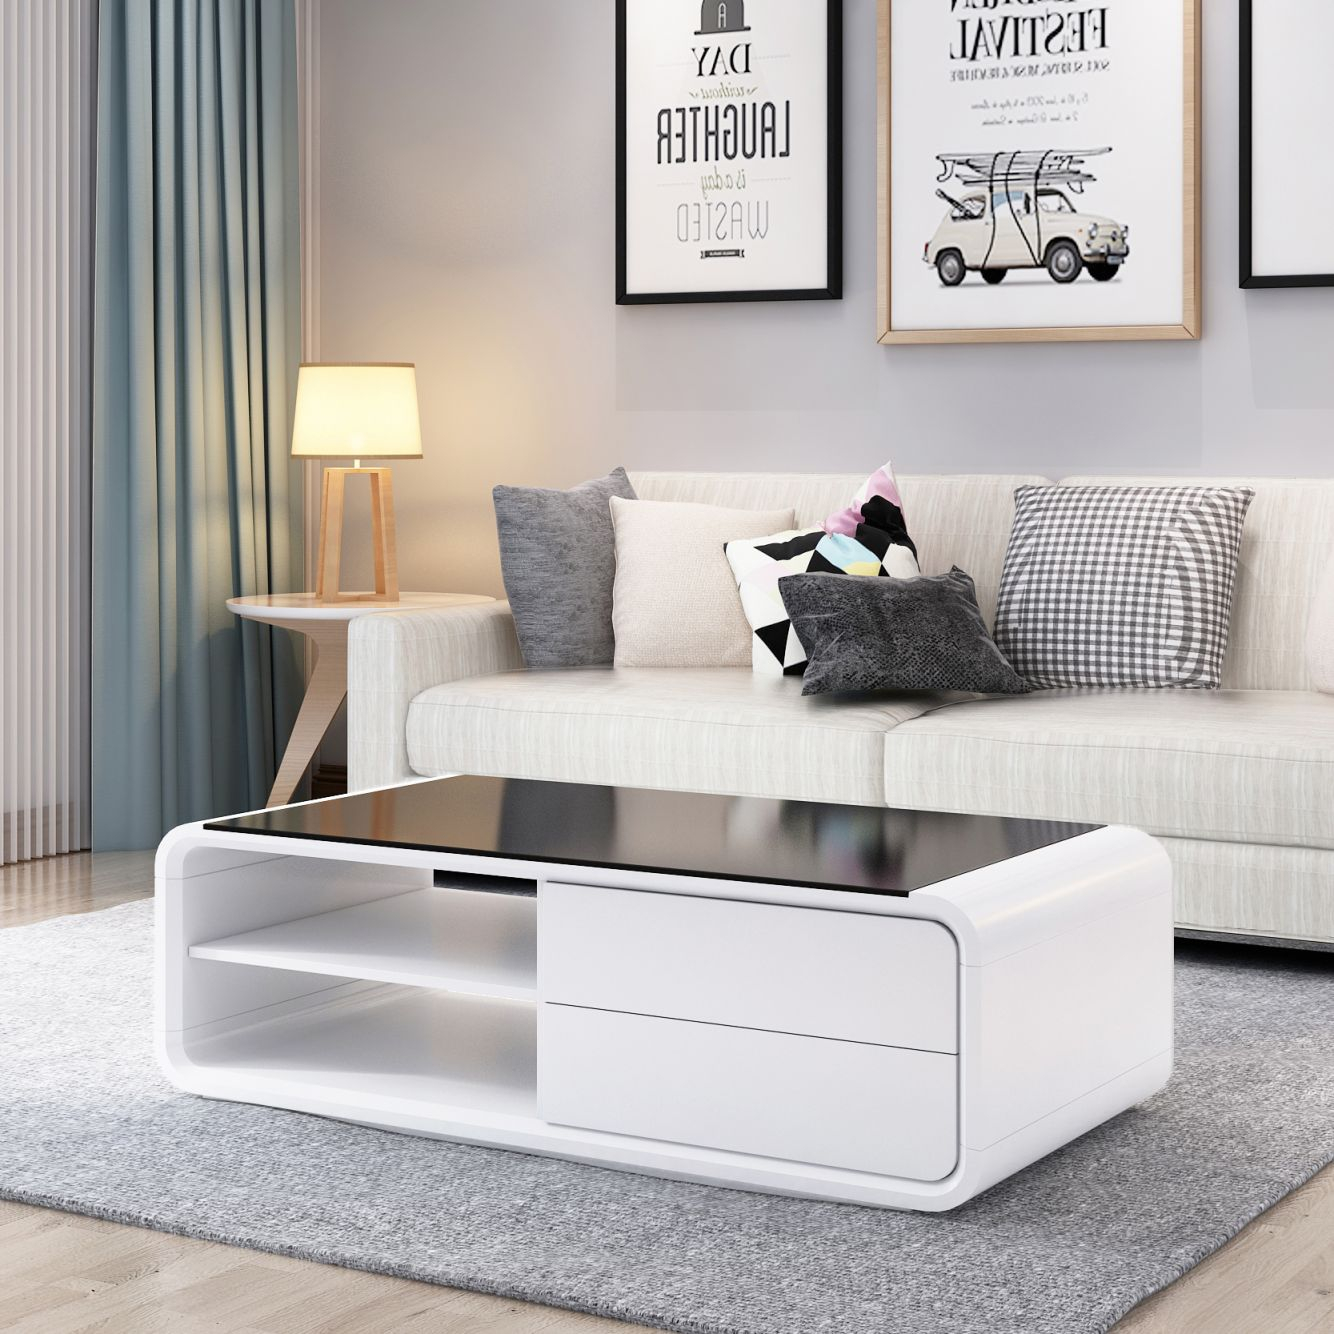 Black Coffee Table With Shelf Layers Modern Living Room Furniture throughout Fresh Modern Living Room Chairs